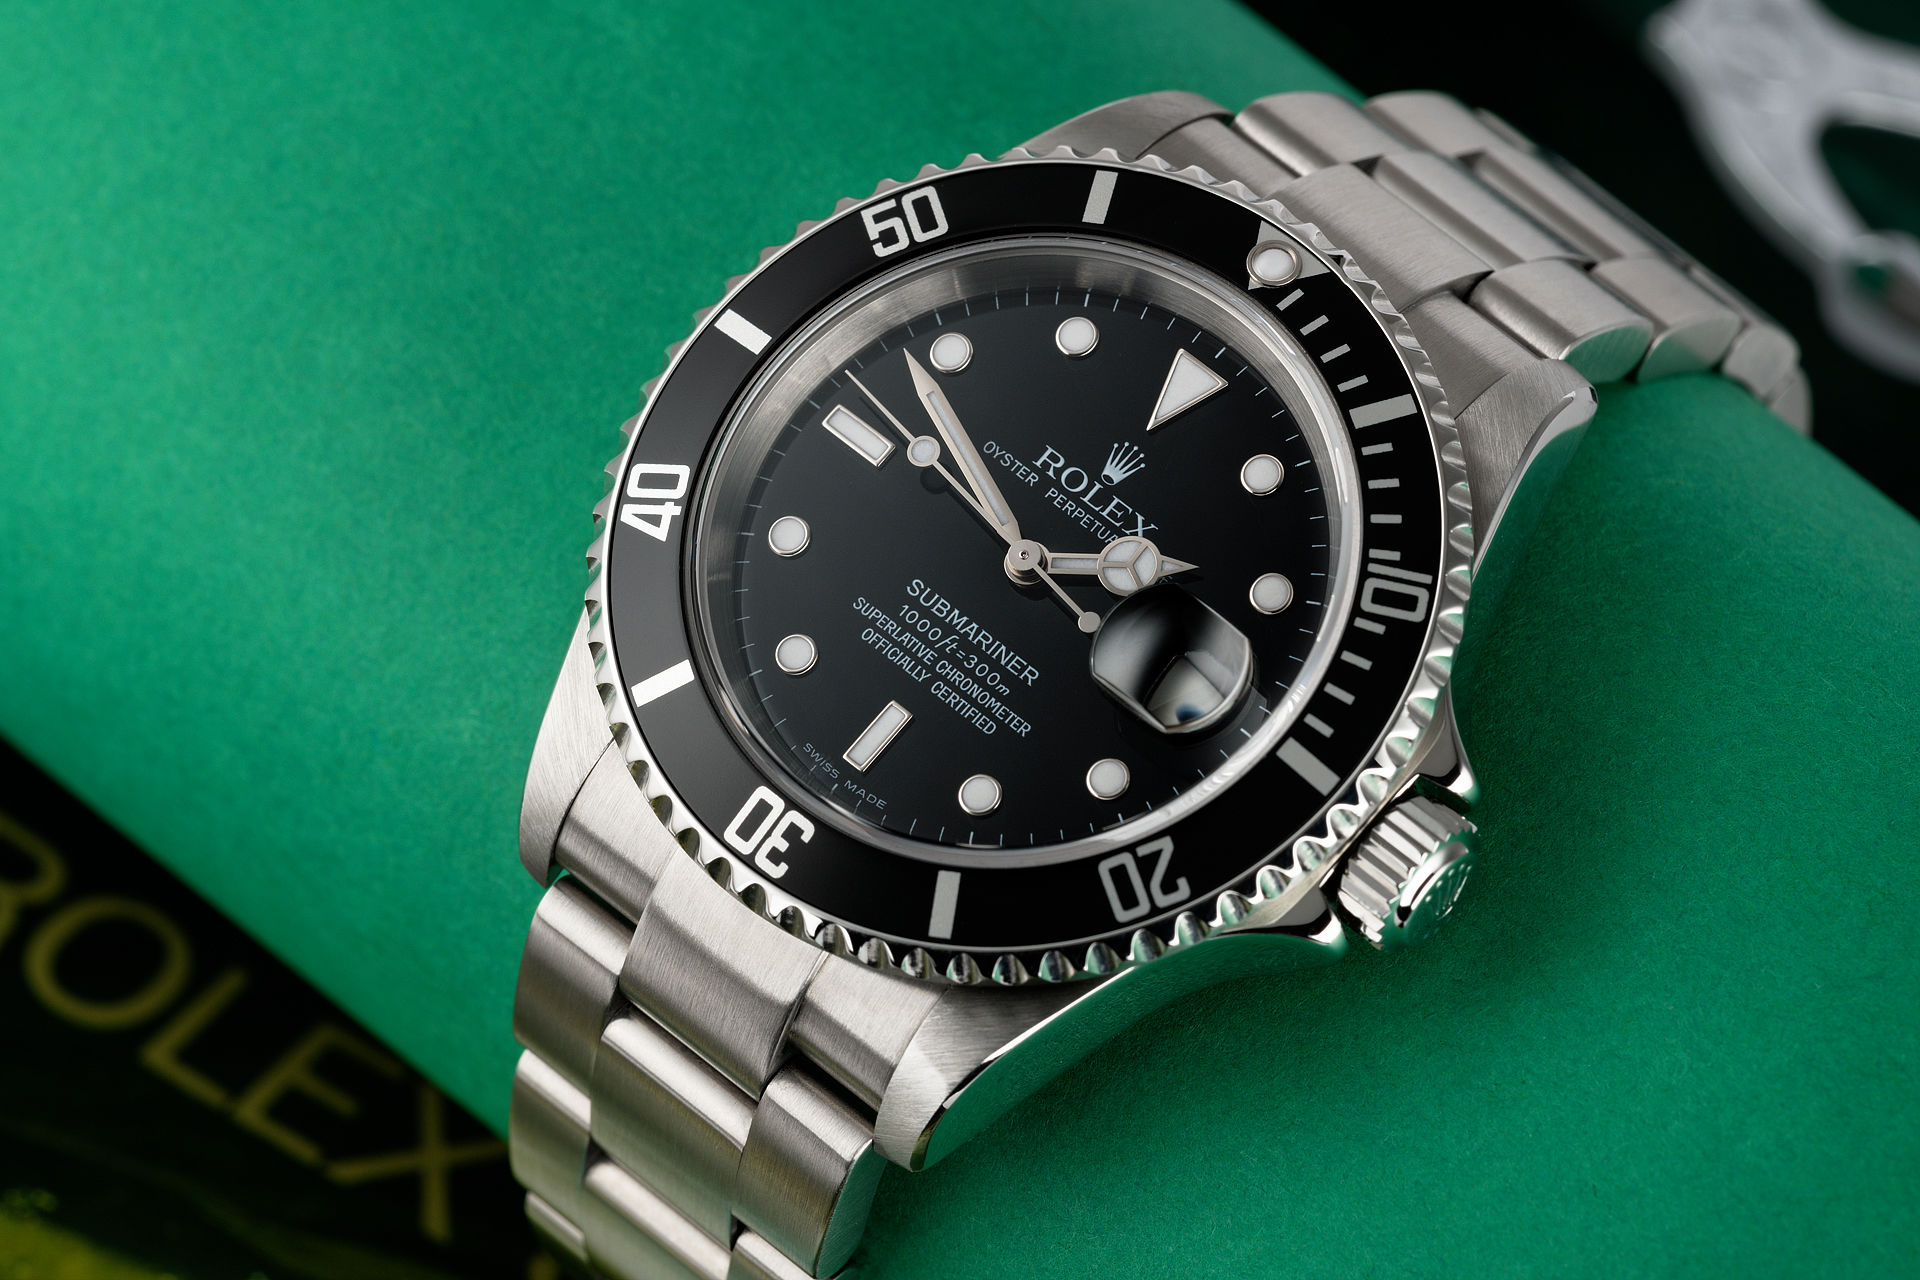 ref 16610 | Rolex Service Papers | Rolex Submariner Date